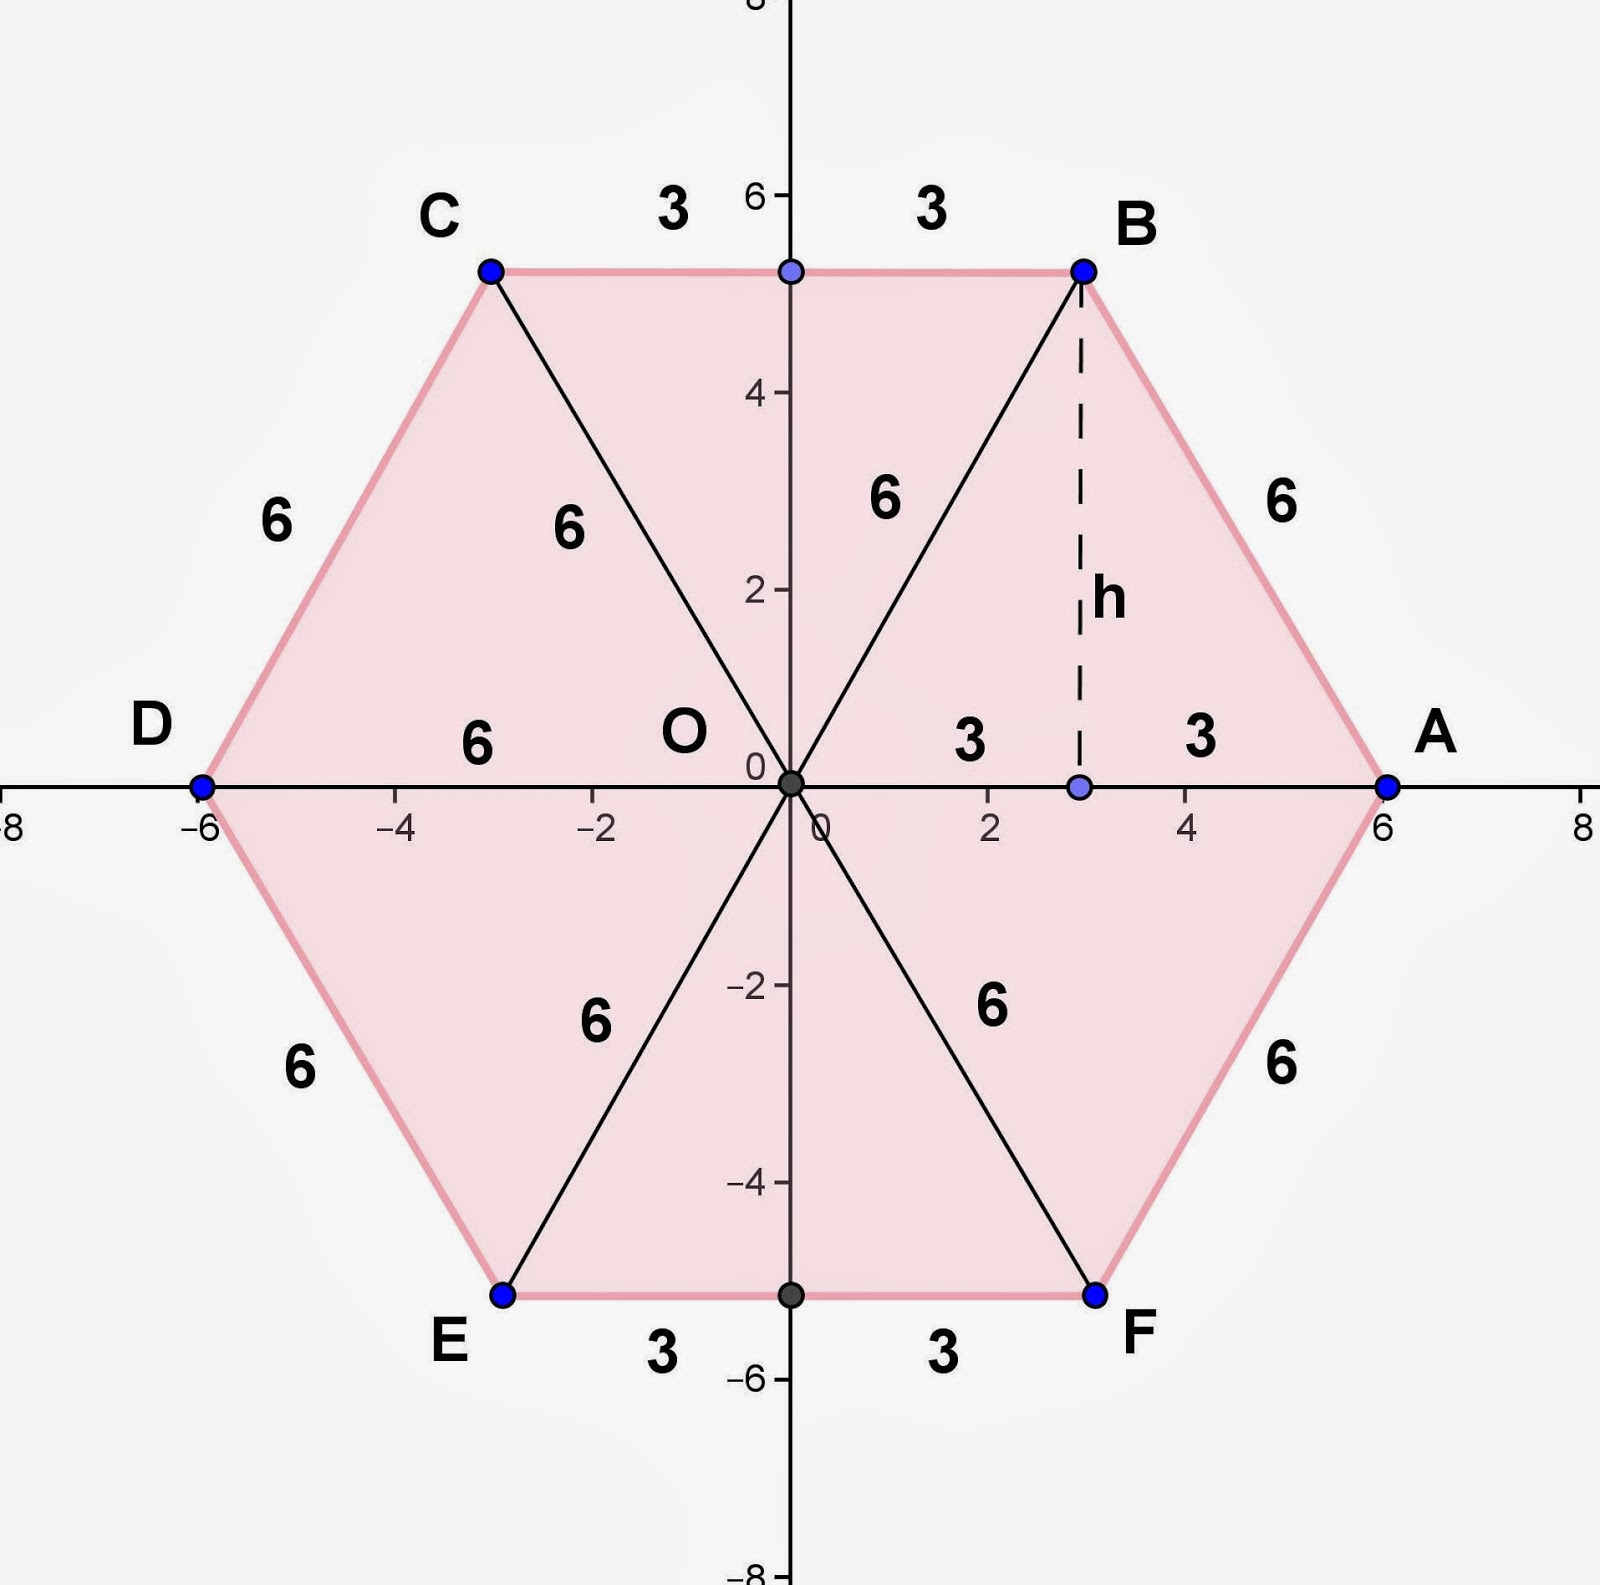 Is A Rhombus A Regular Polygon - seodiving.com